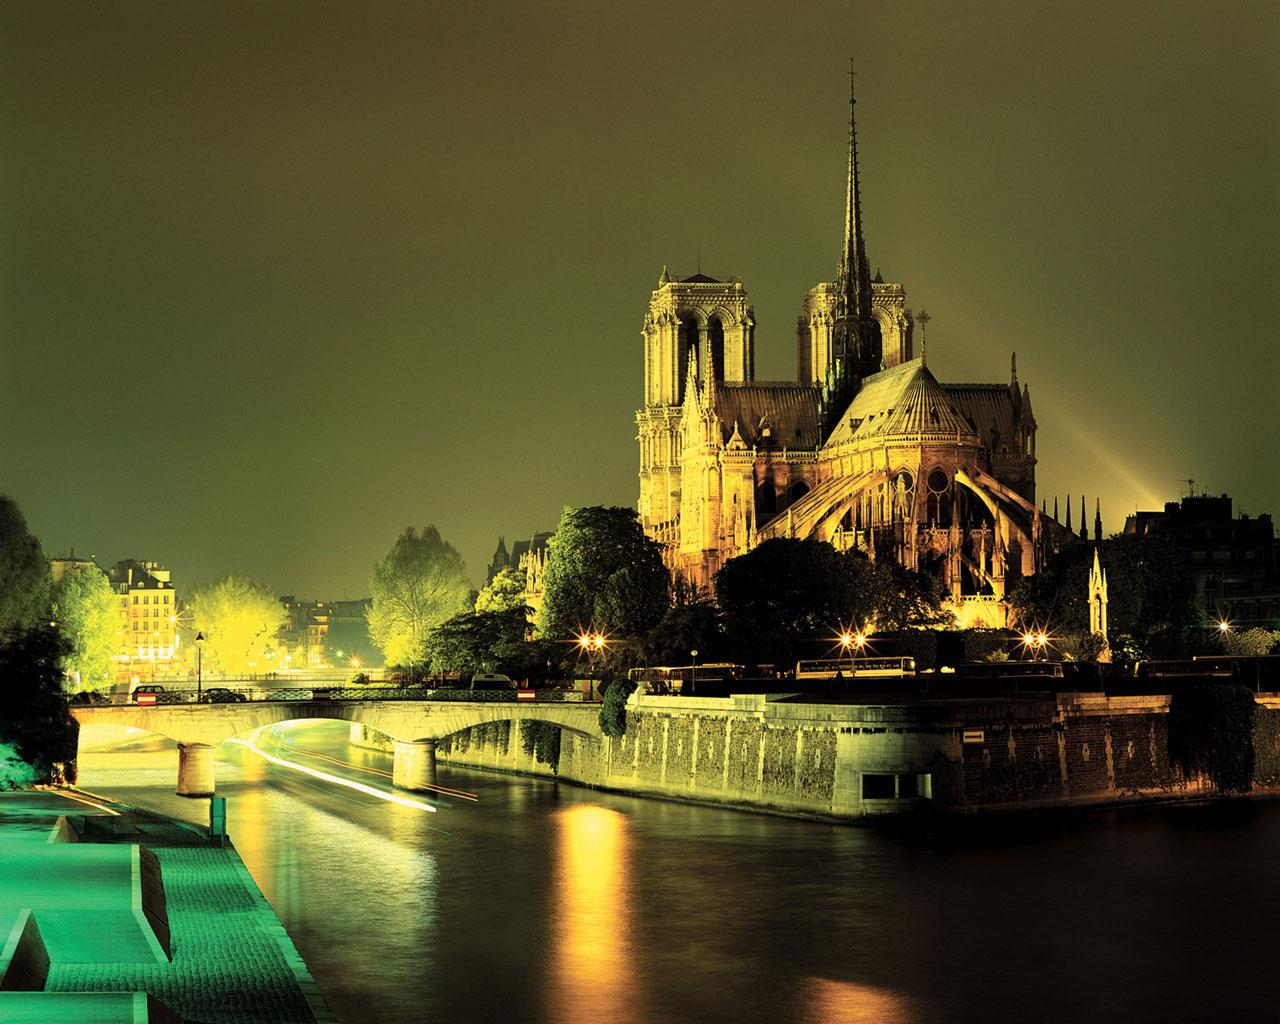 Paris - Notre Dame Cathedral Wallpaper #2 1280 x 1024